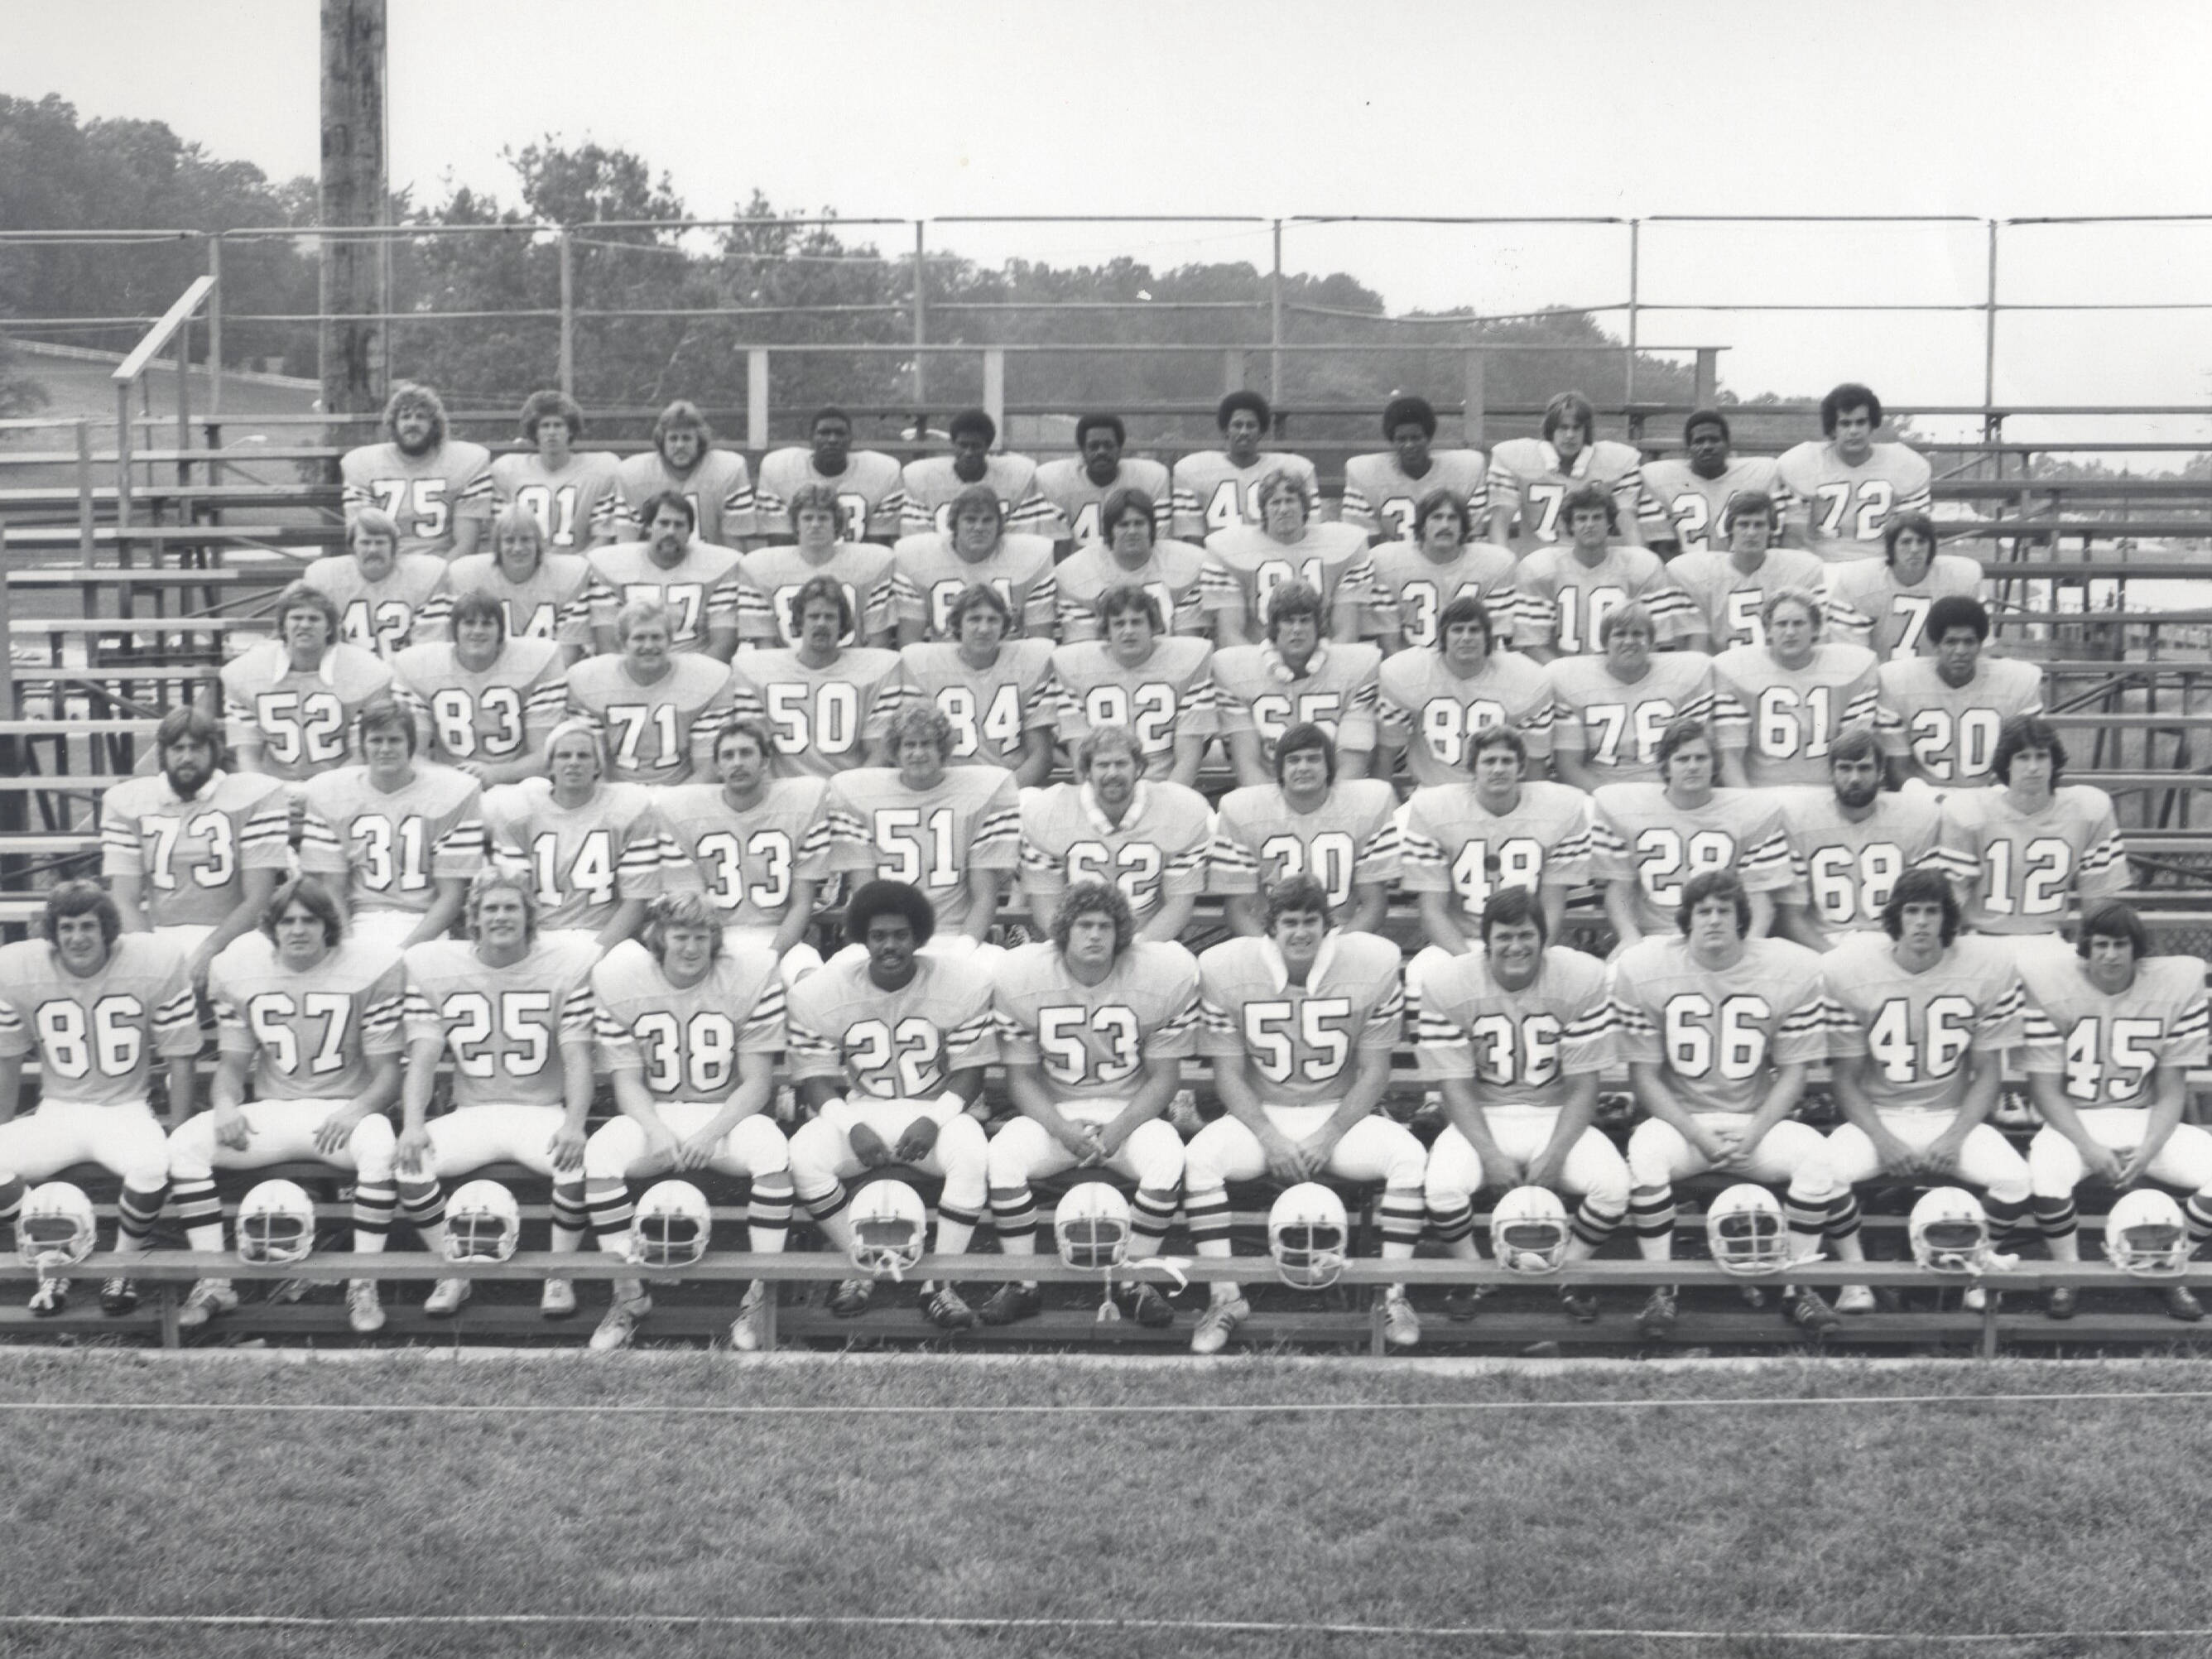 Towson University Athletics 1976 Tigers To Be Honored At Hall Of Fame Banquet